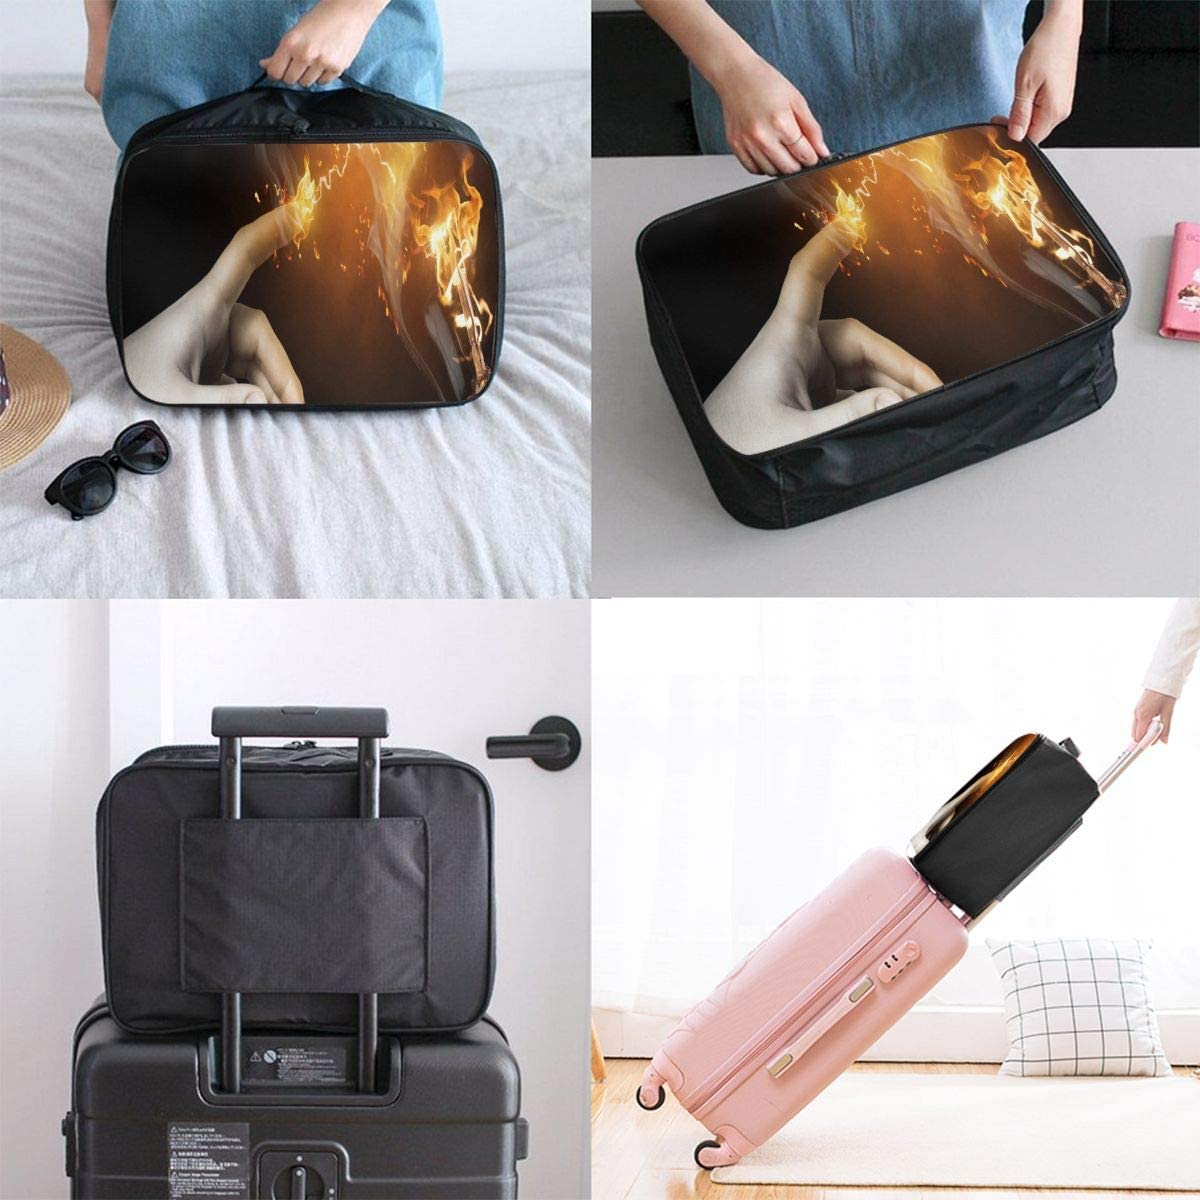 Burning Light Bulb Travel Carry-on Luggage Weekender Bag Overnight Tote Flight Duffel In Trolley Handle